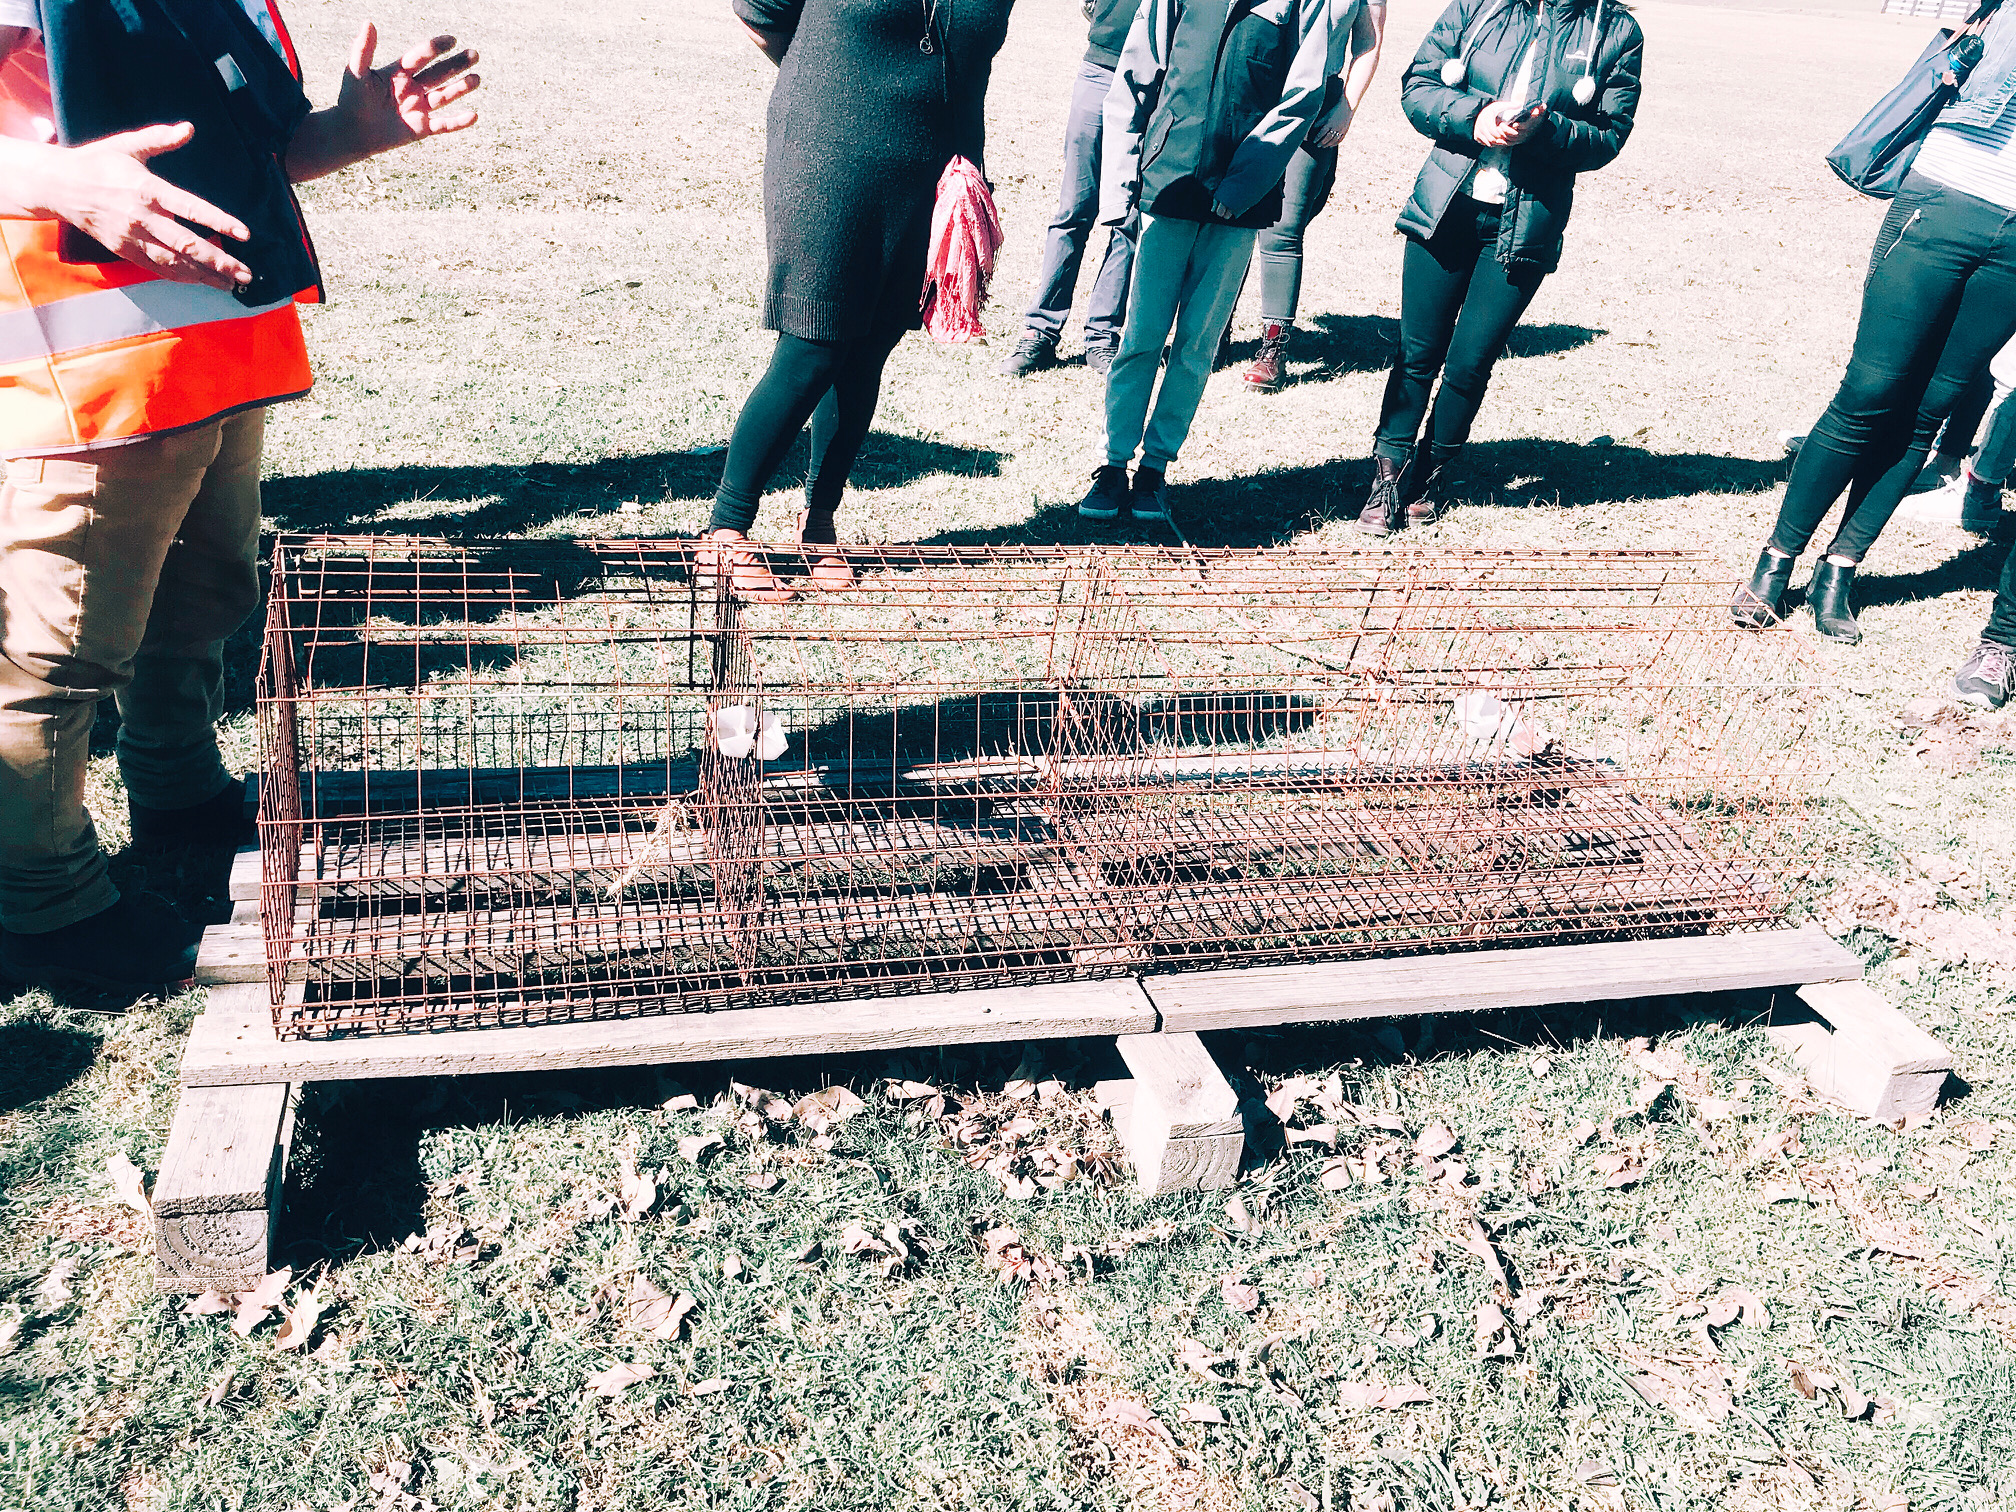 The tiny cages where the rescued hens spent their entire lives, cramped in with others, before rescue